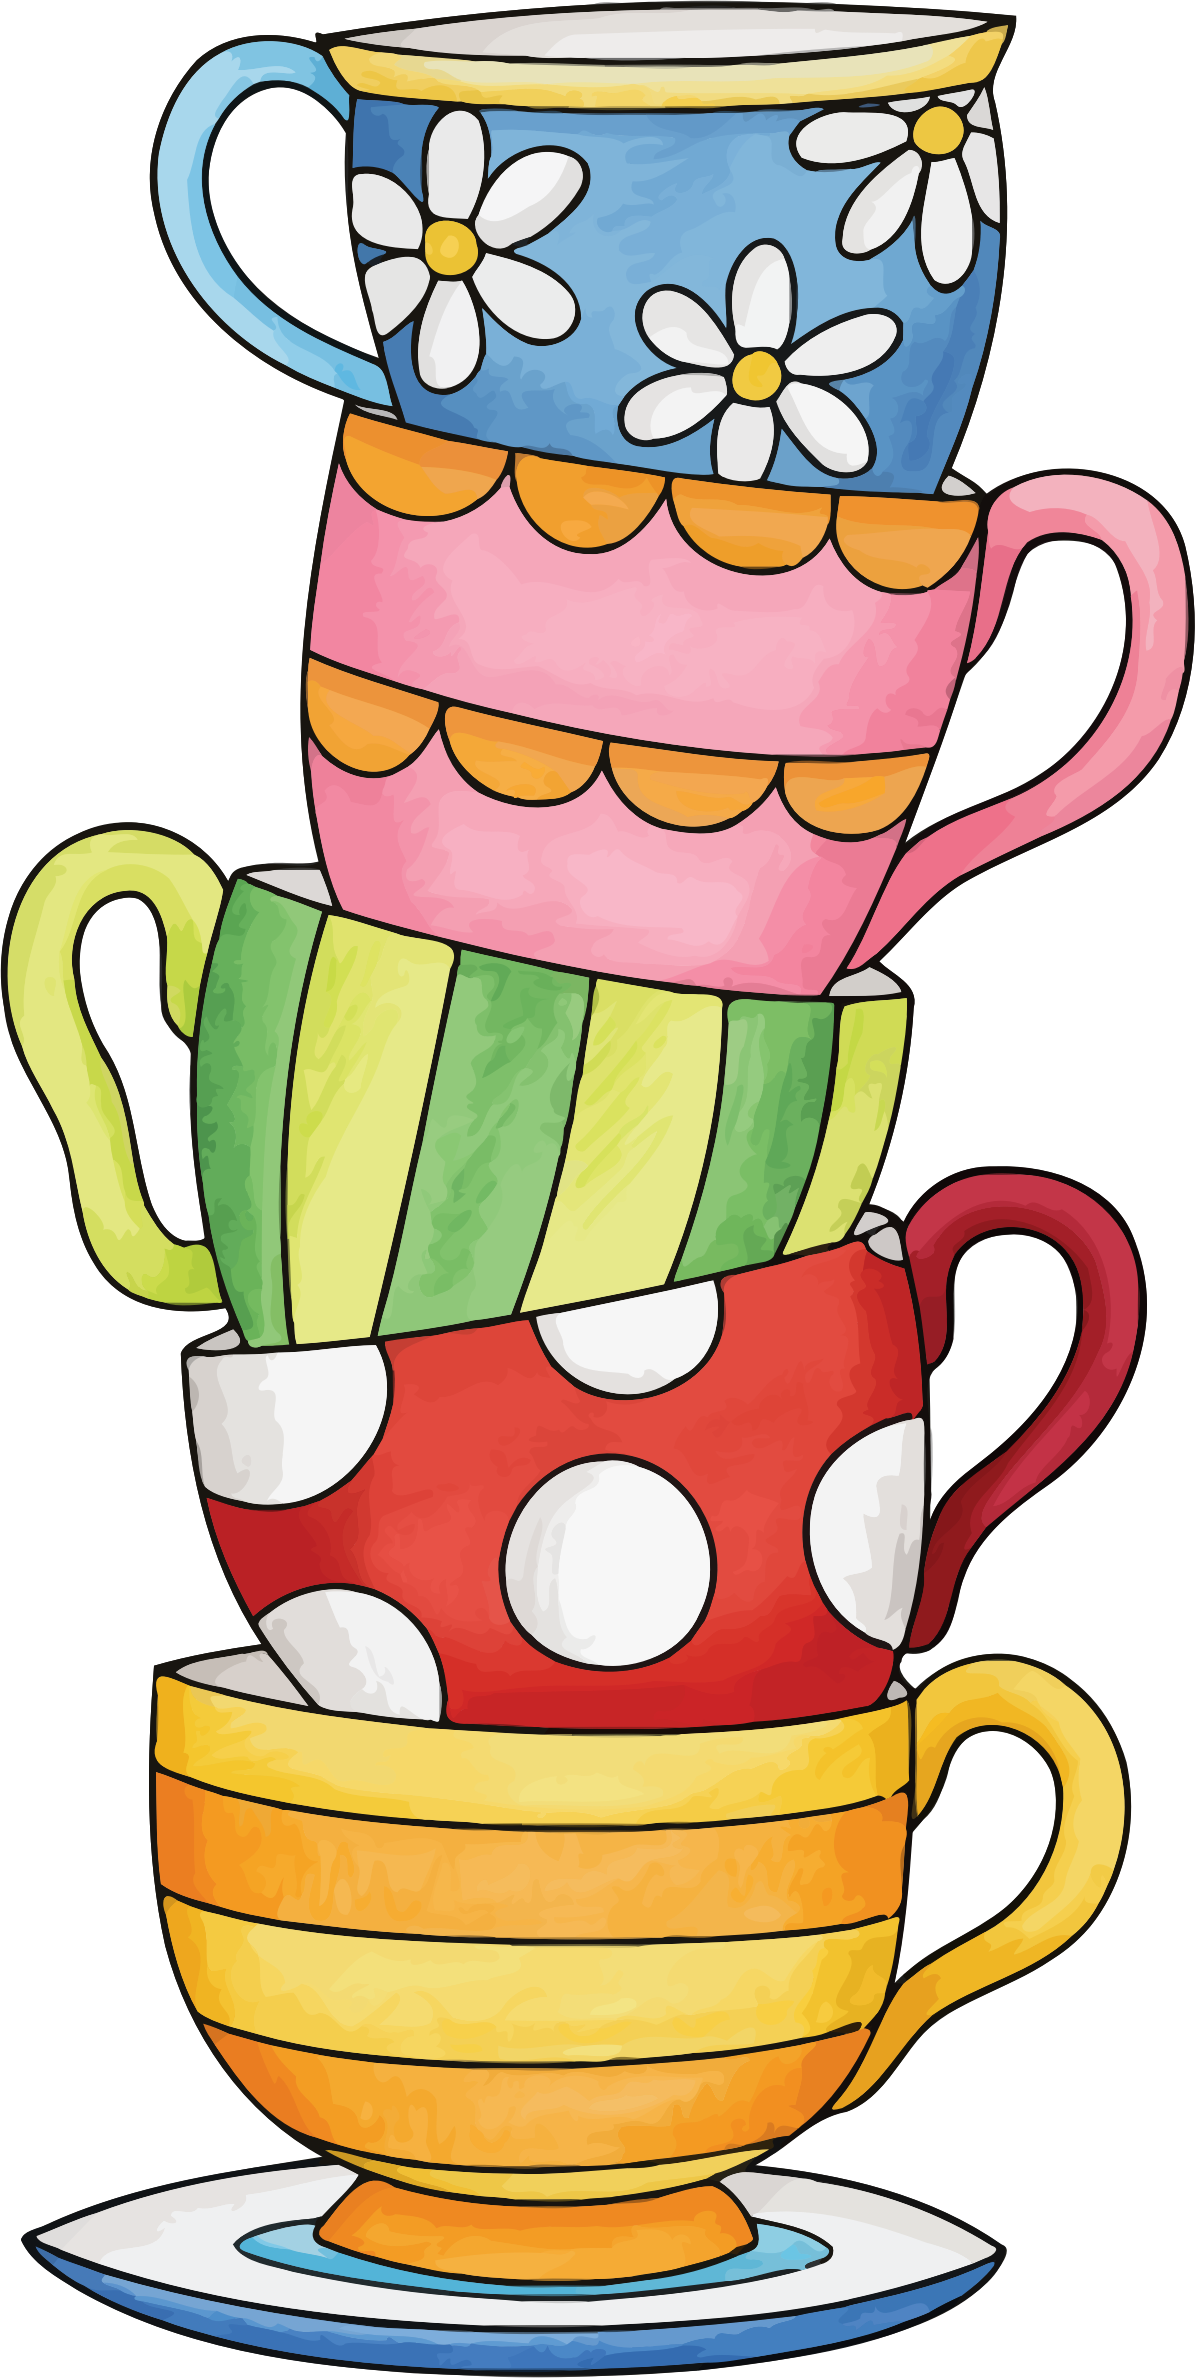 Of cups big image. Clipart homework stack